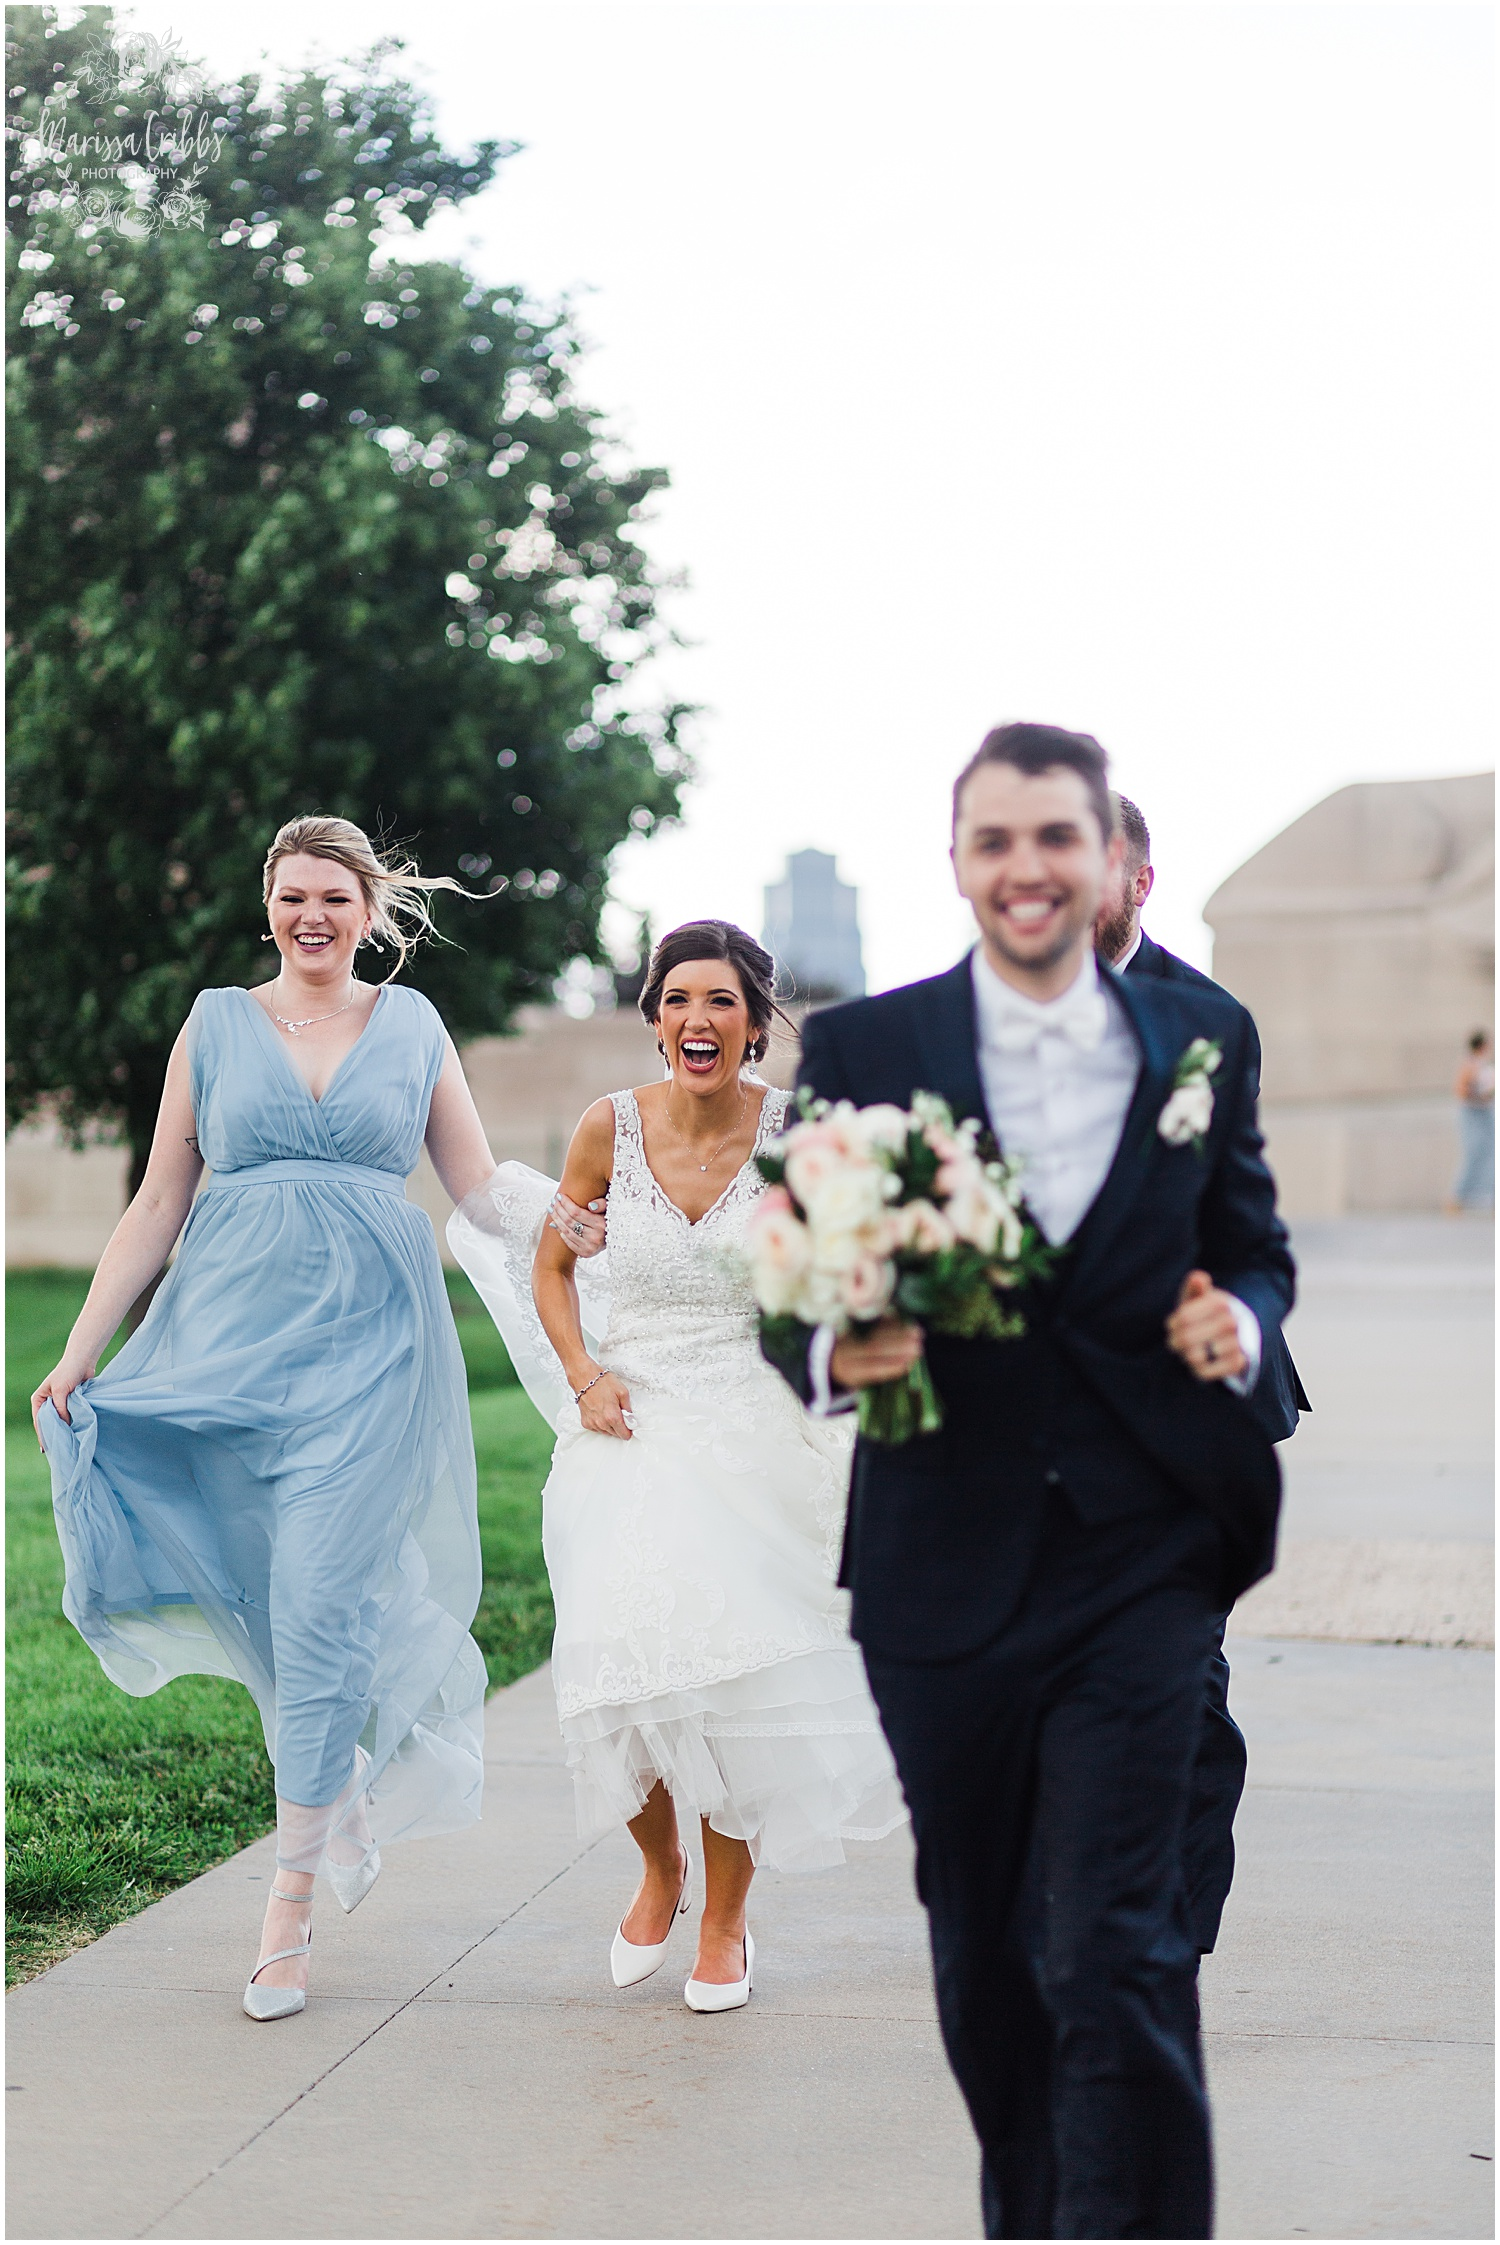 MEGAN & DEREK WEDDING BLOG | MARISSA CRIBBS PHOTOGRAPHY_8164.jpg